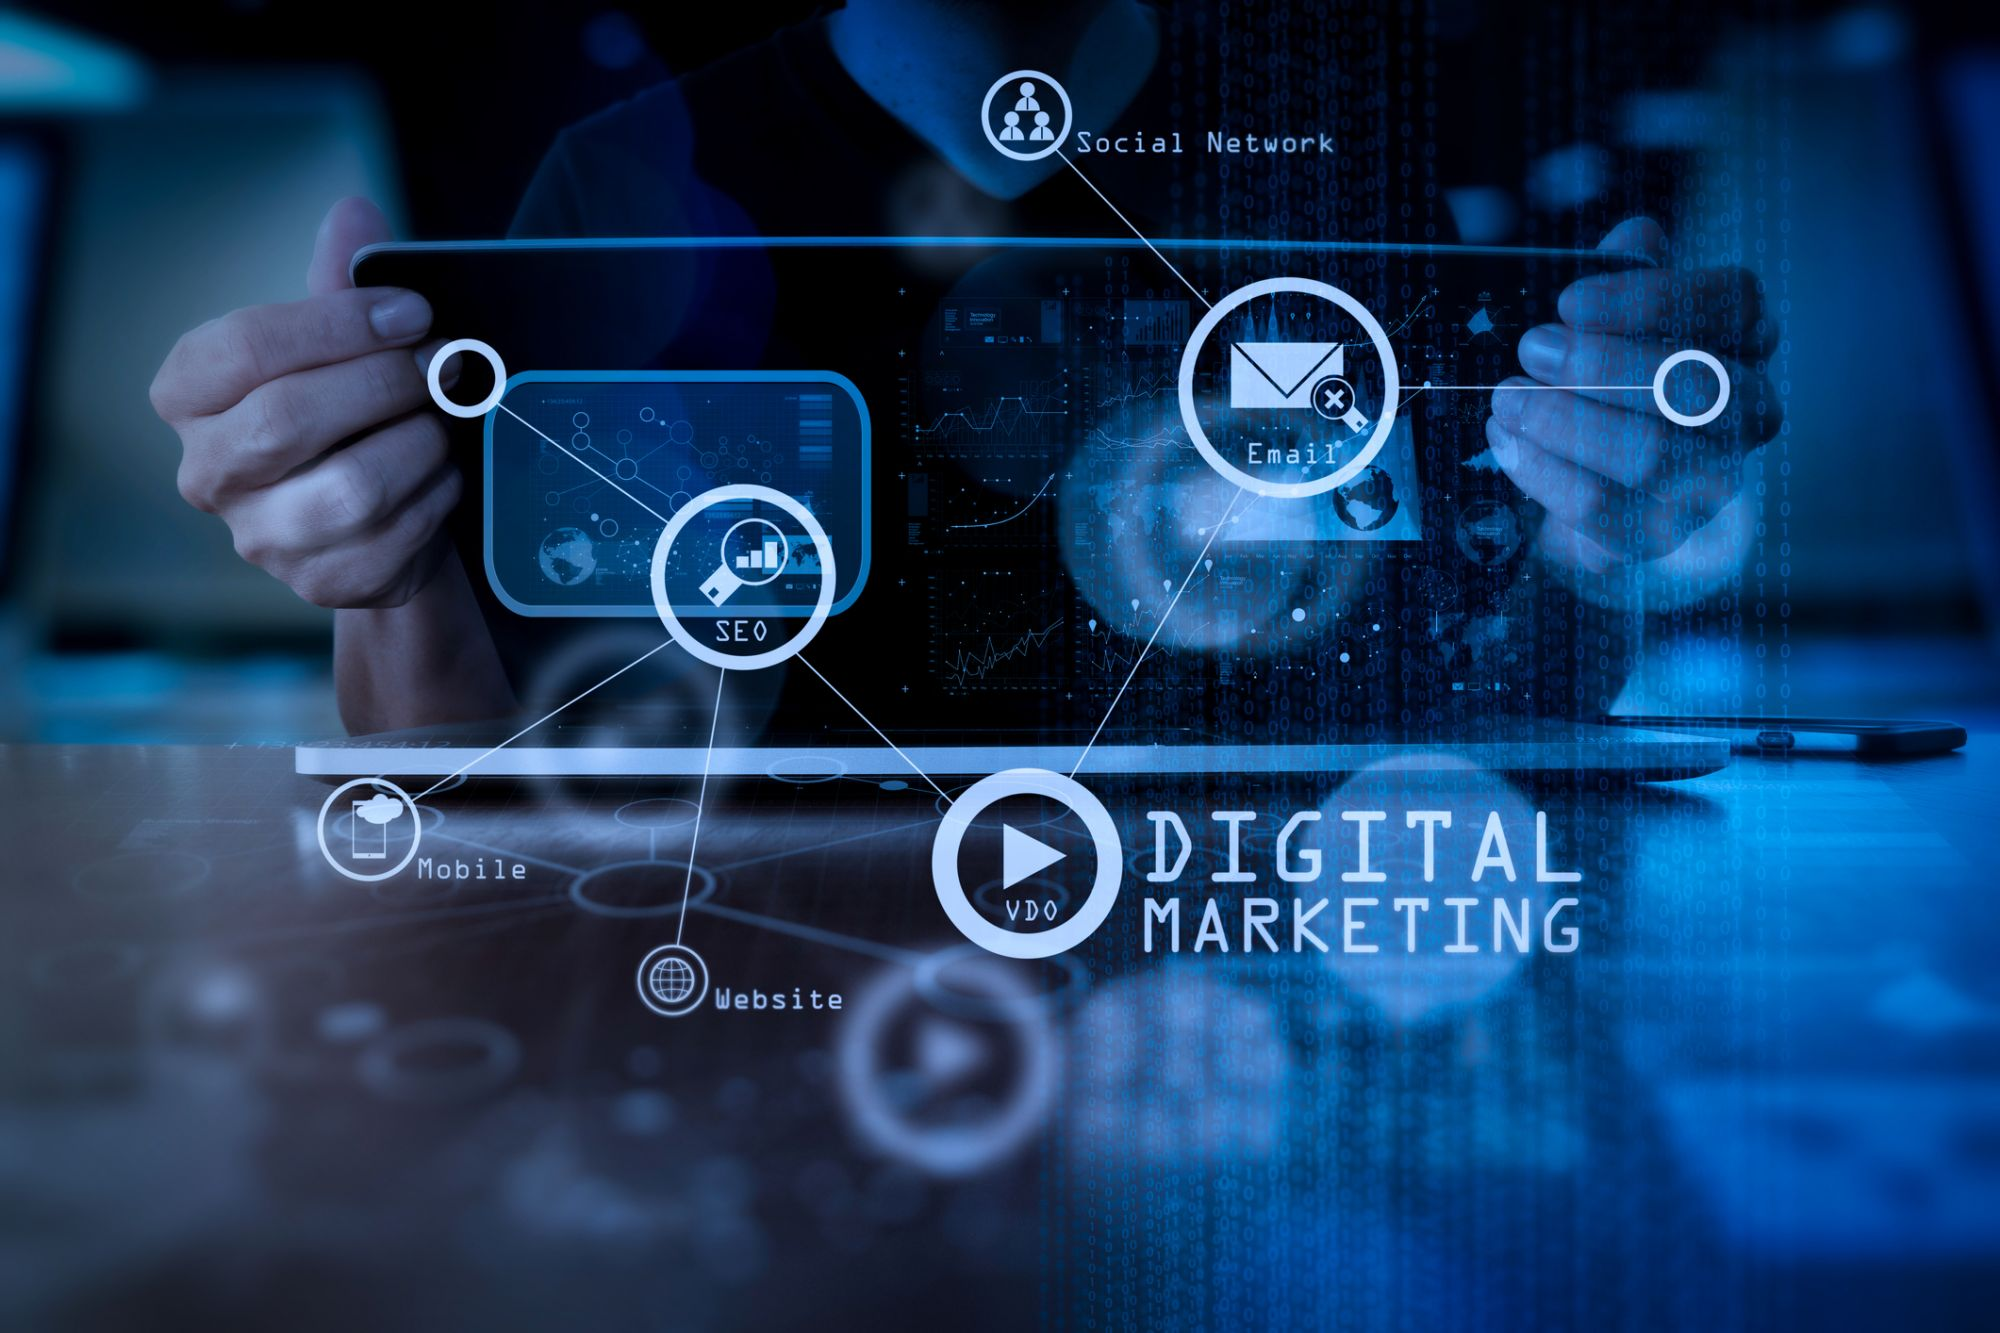 Fundamentals of Digital Marketing - Everything you Need to Know